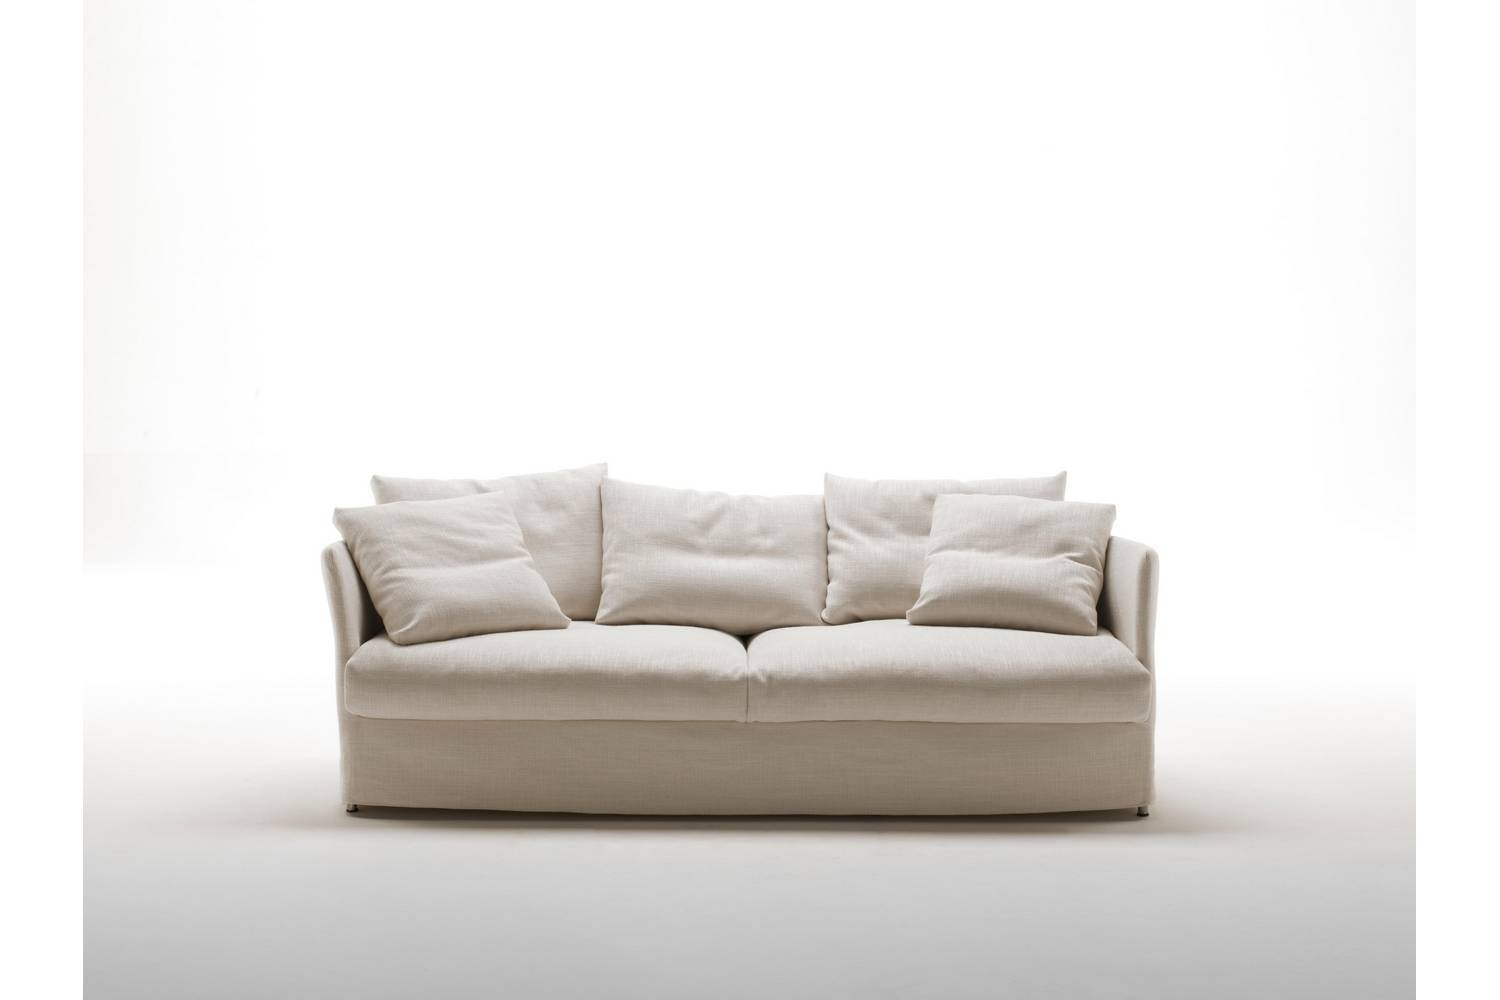 Curve Sofa by Piero Lissoni for Living Divani